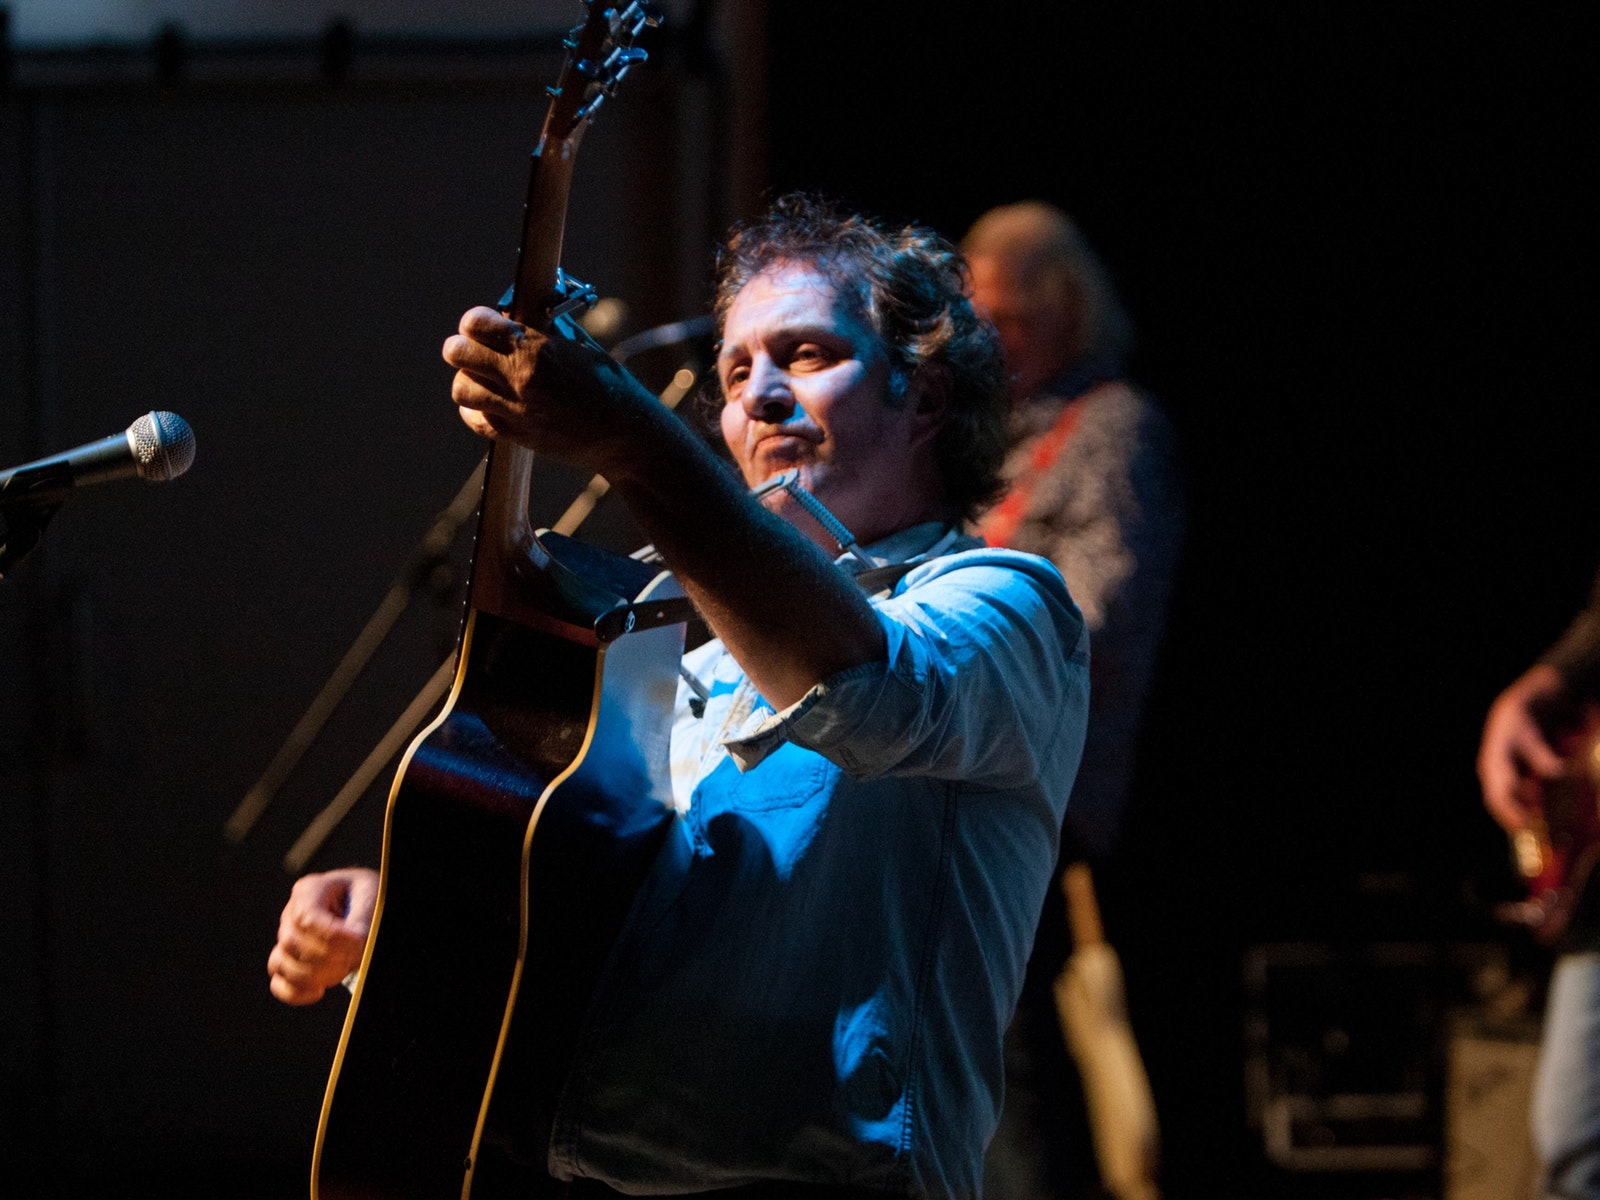 Jeff Jenkins pays homage to Bob Dylan in his show DYLANesque - the Bob Dylan Story